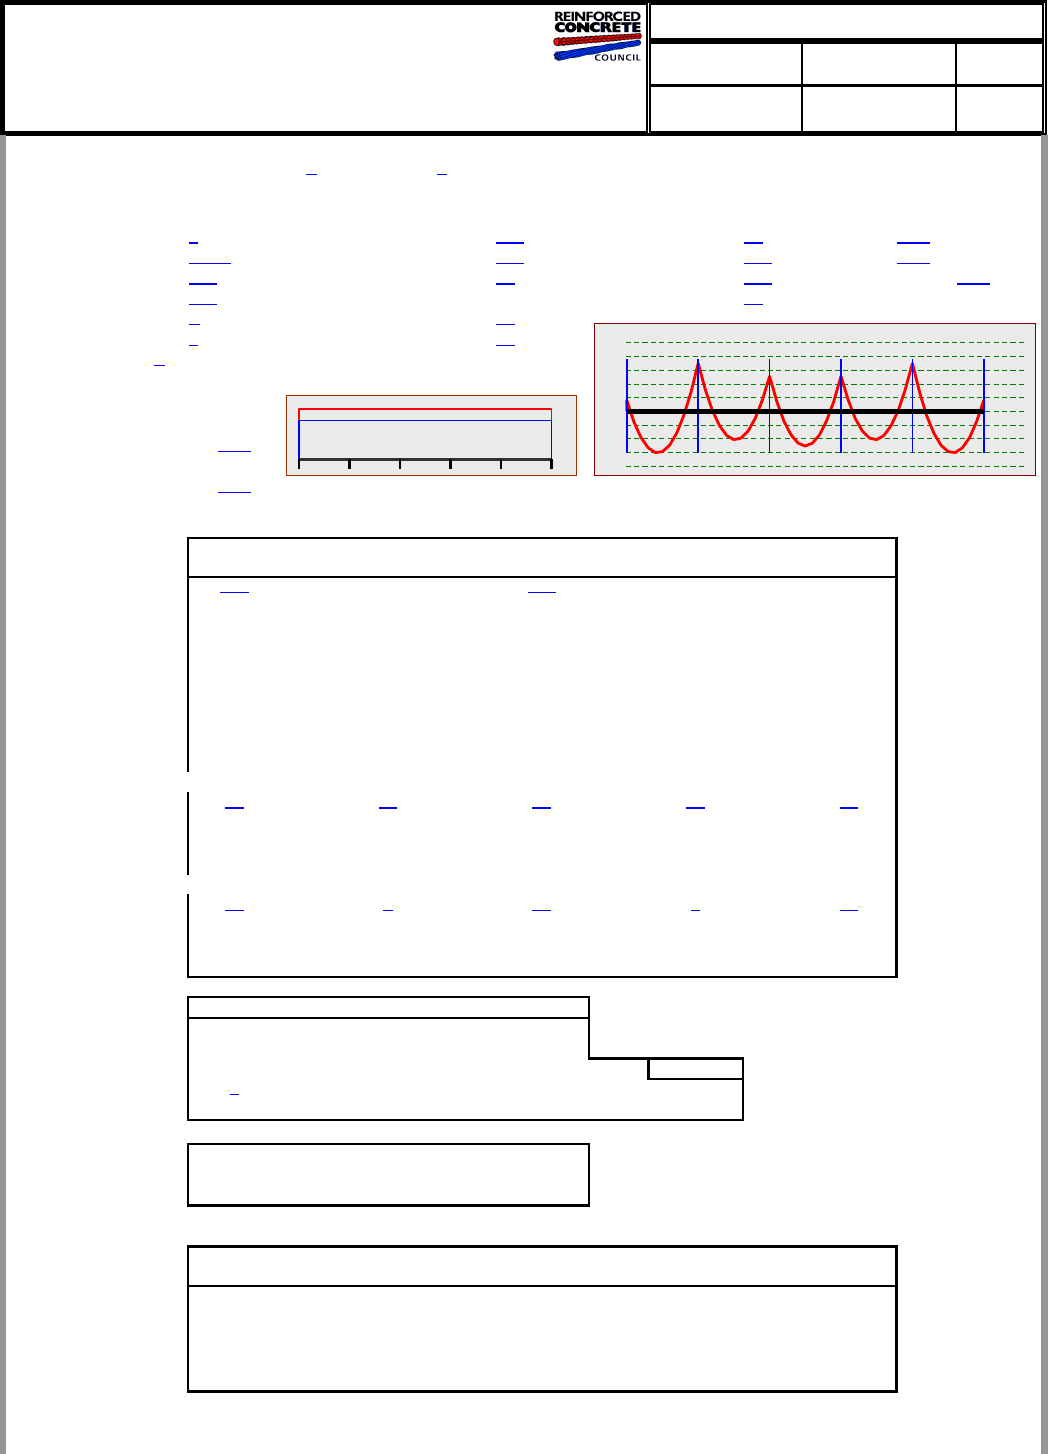 Reinforced Concrete Slab Design Spreadsheet For Ribbed Slab Design To Bs 81101997 Using Table 3.12 Coefficients.xls